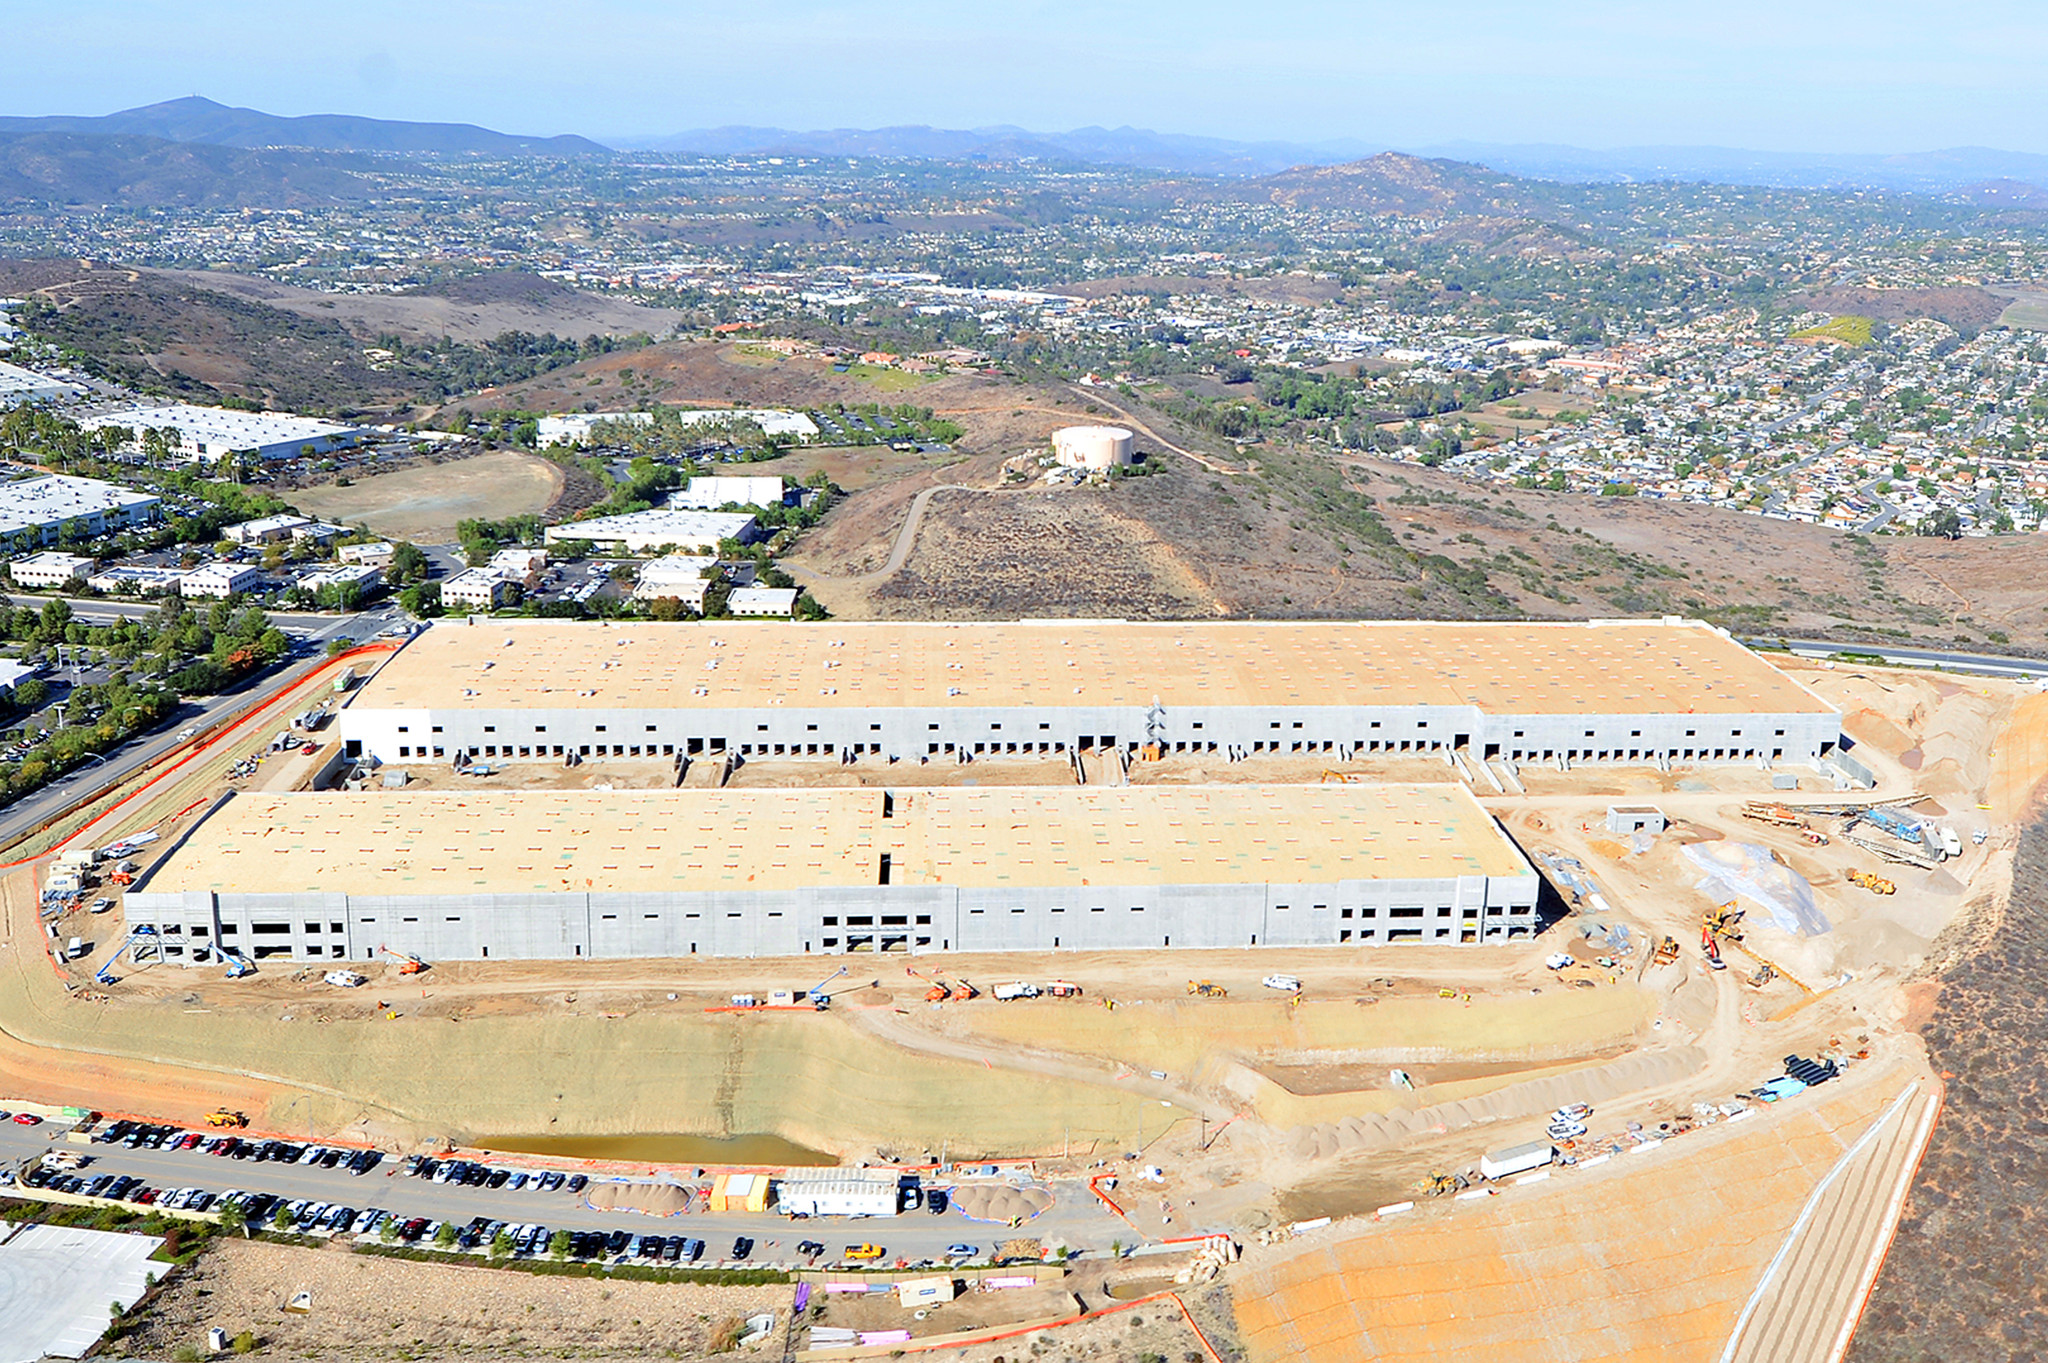 Vantage Point in Poway is the largest speculative project underway in San Diego with more than 530,000 square feet. (CoStar)